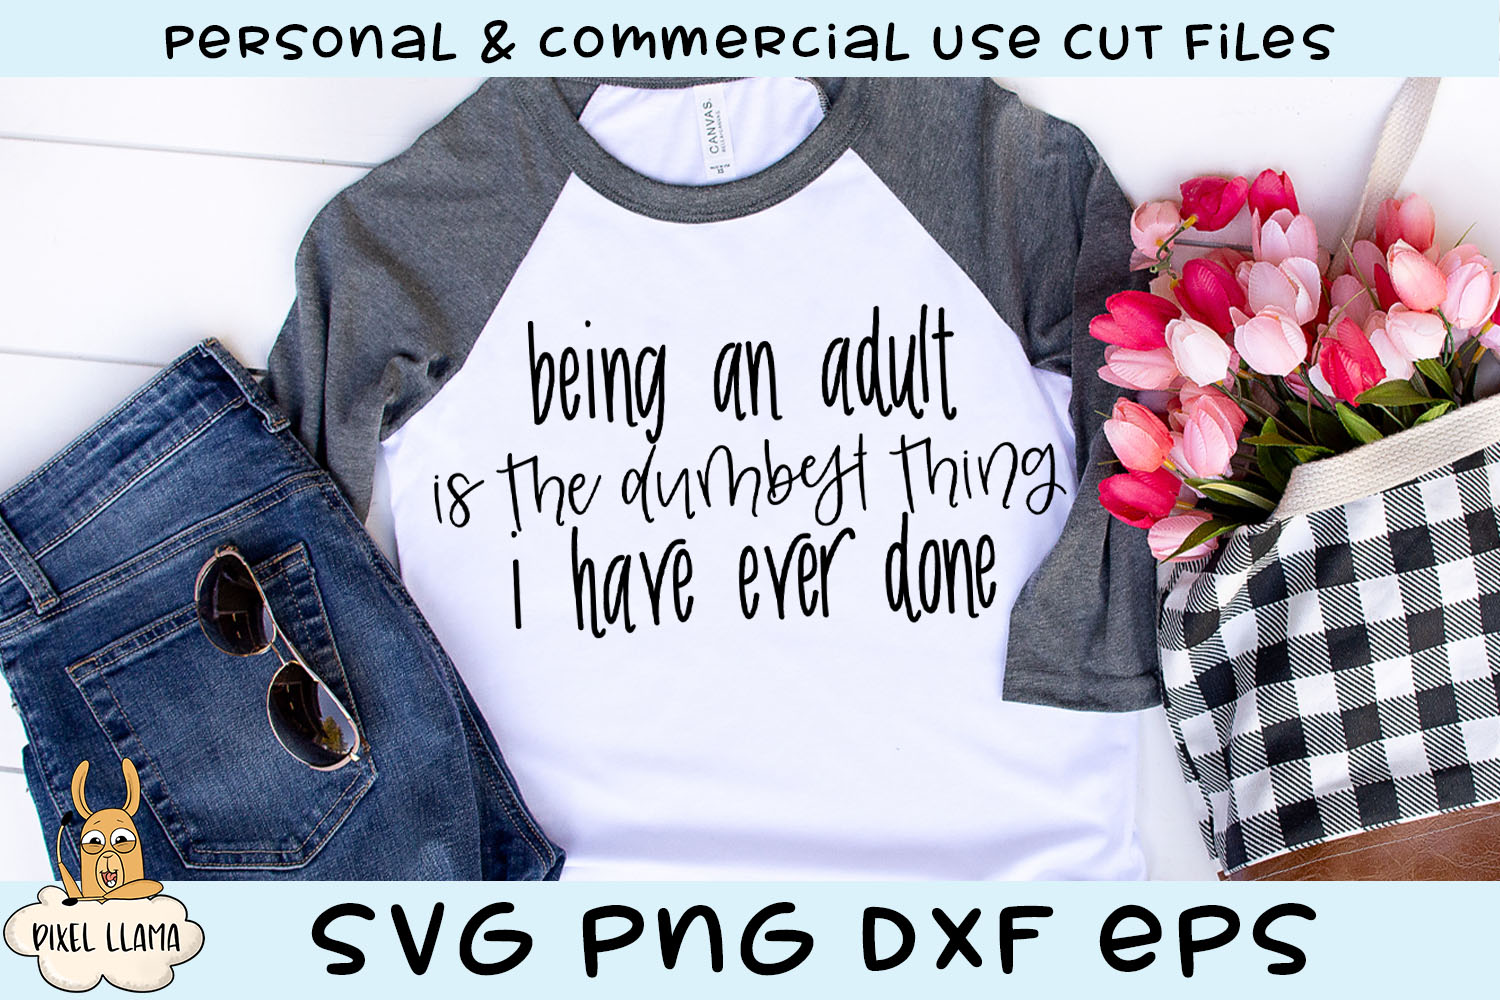 Being An Adult Is The Dumbest Thing I Have Ever Done SVG example image 1